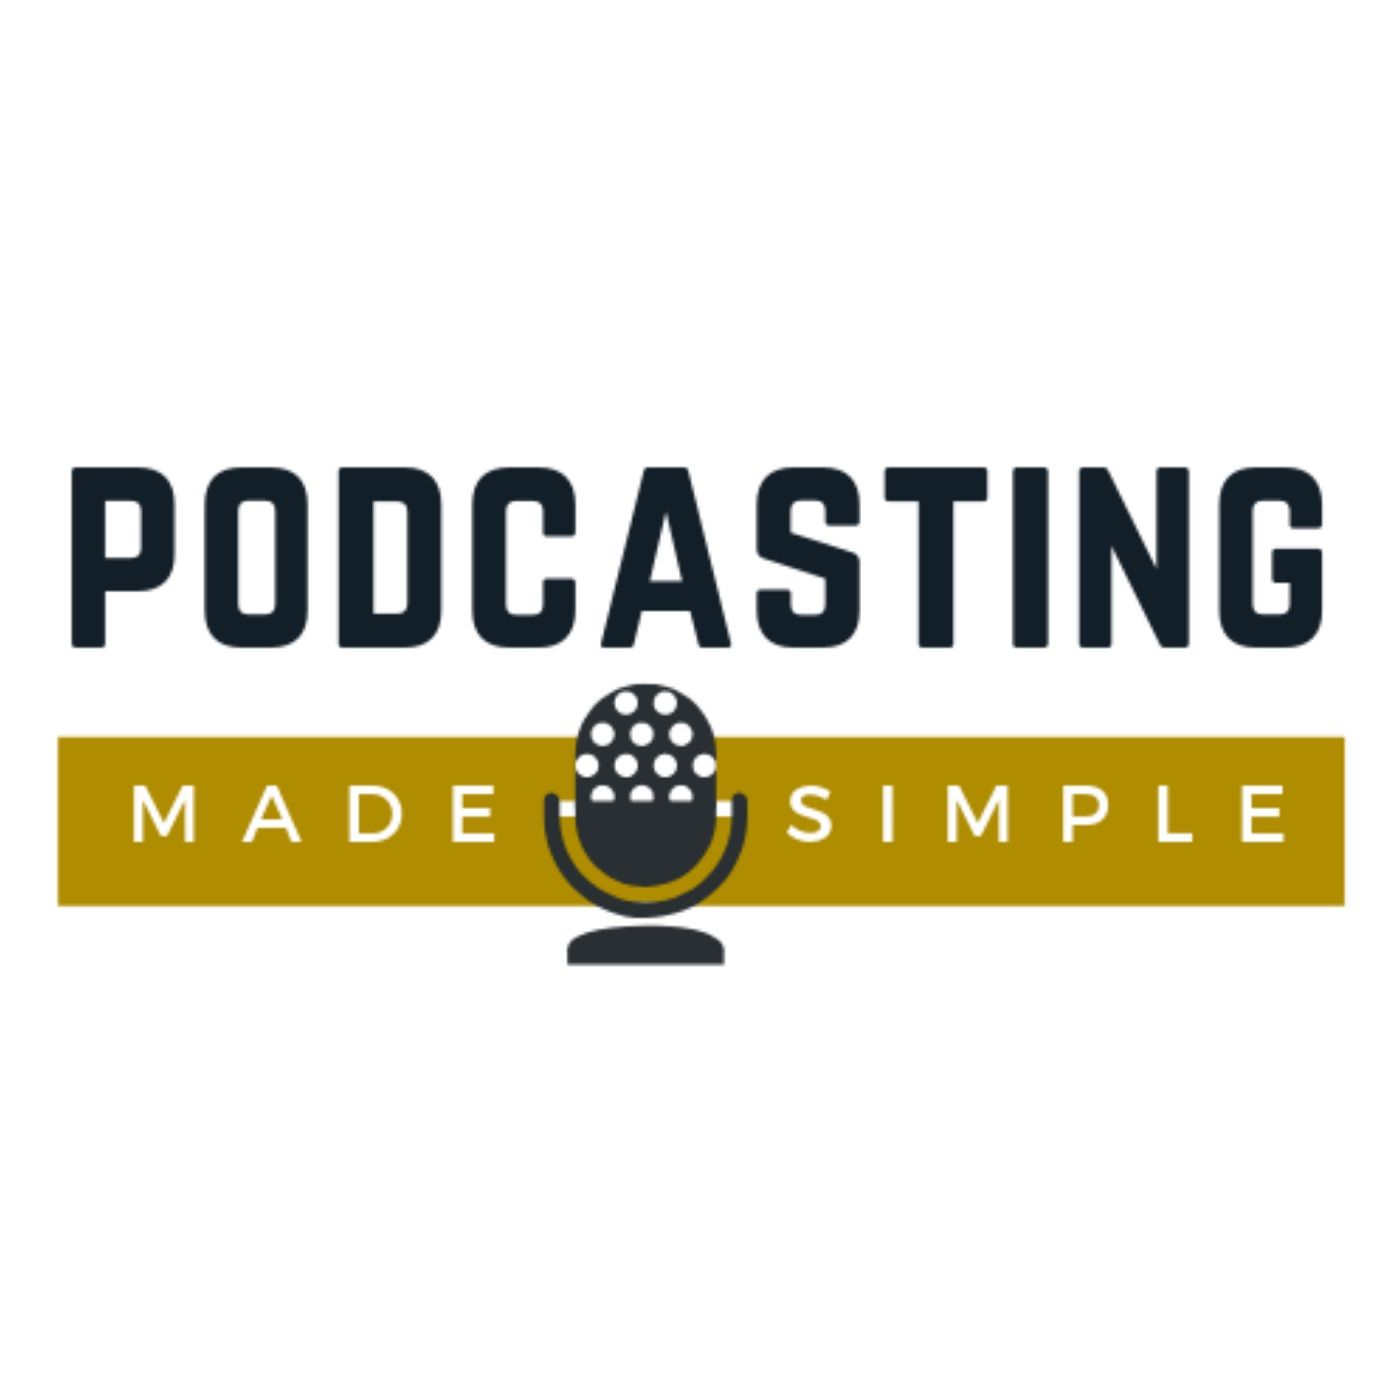 Podcasting Made Simple - Trailer